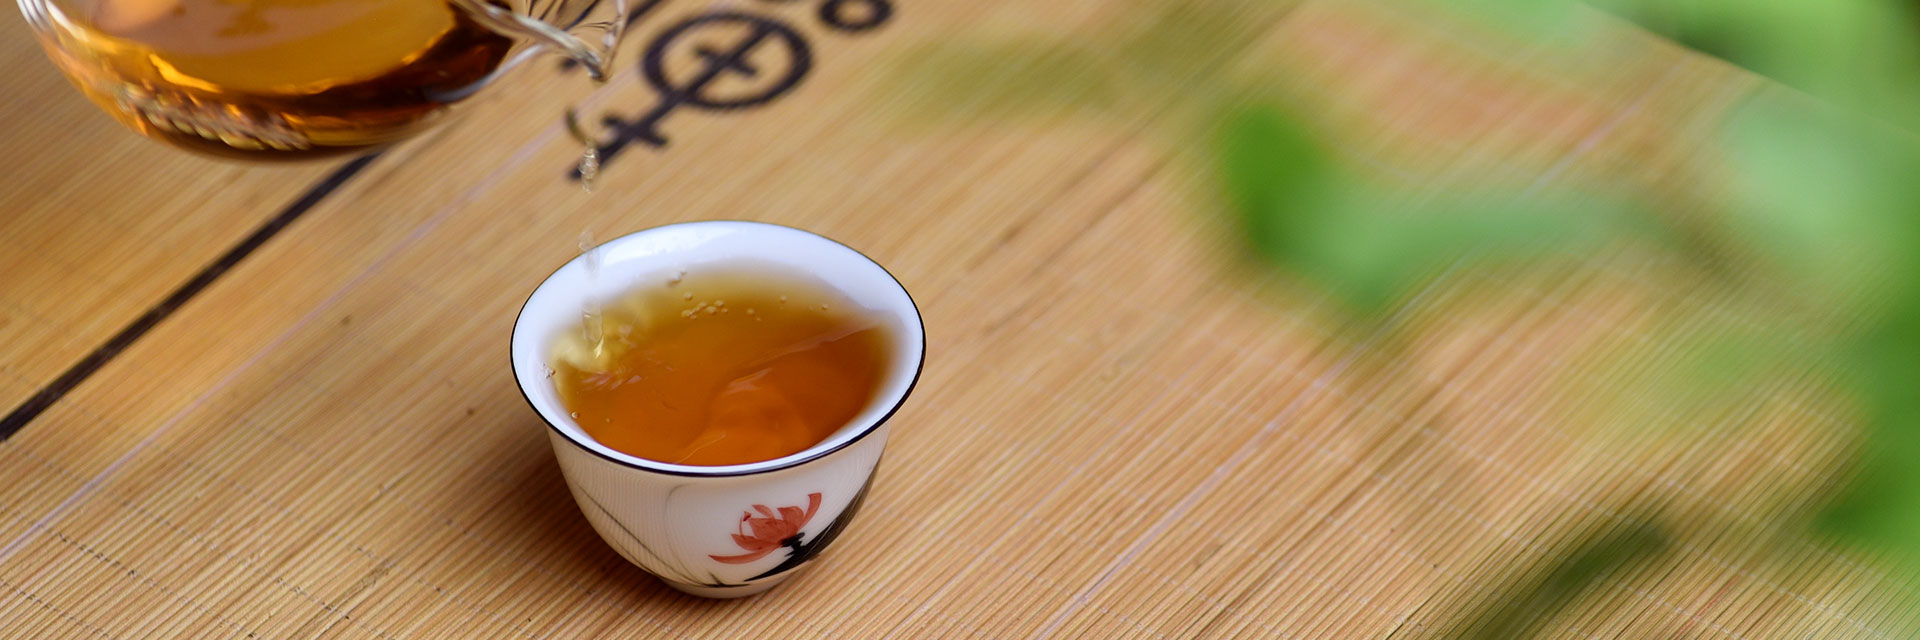 Bailin Gongfu Black Tea – An Overview